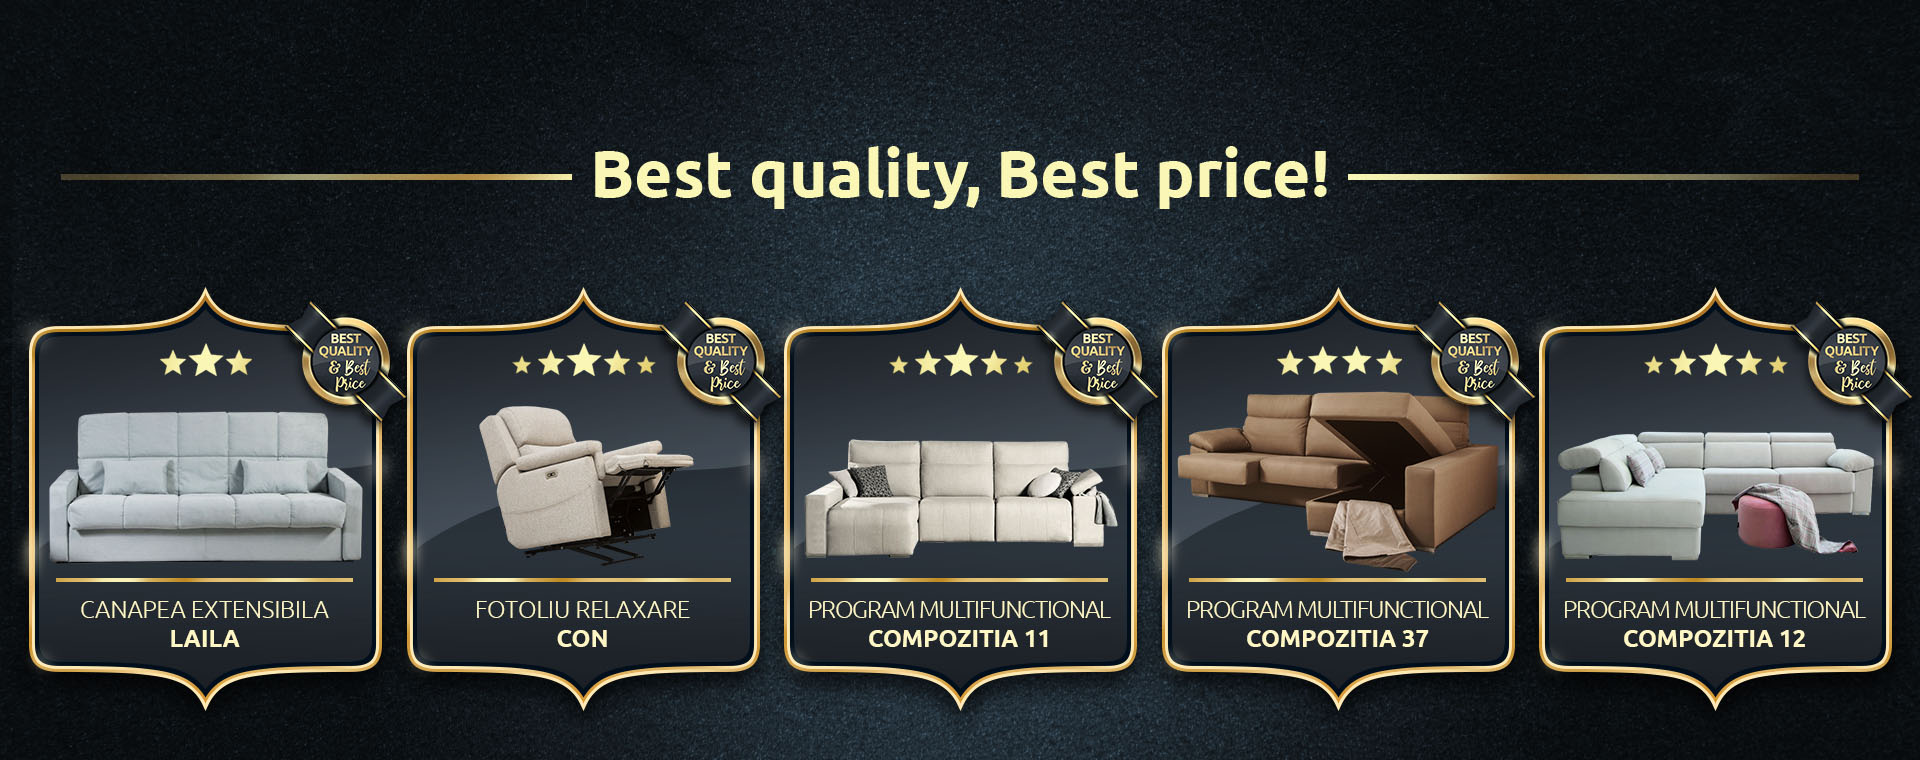 Best Quality Best Price